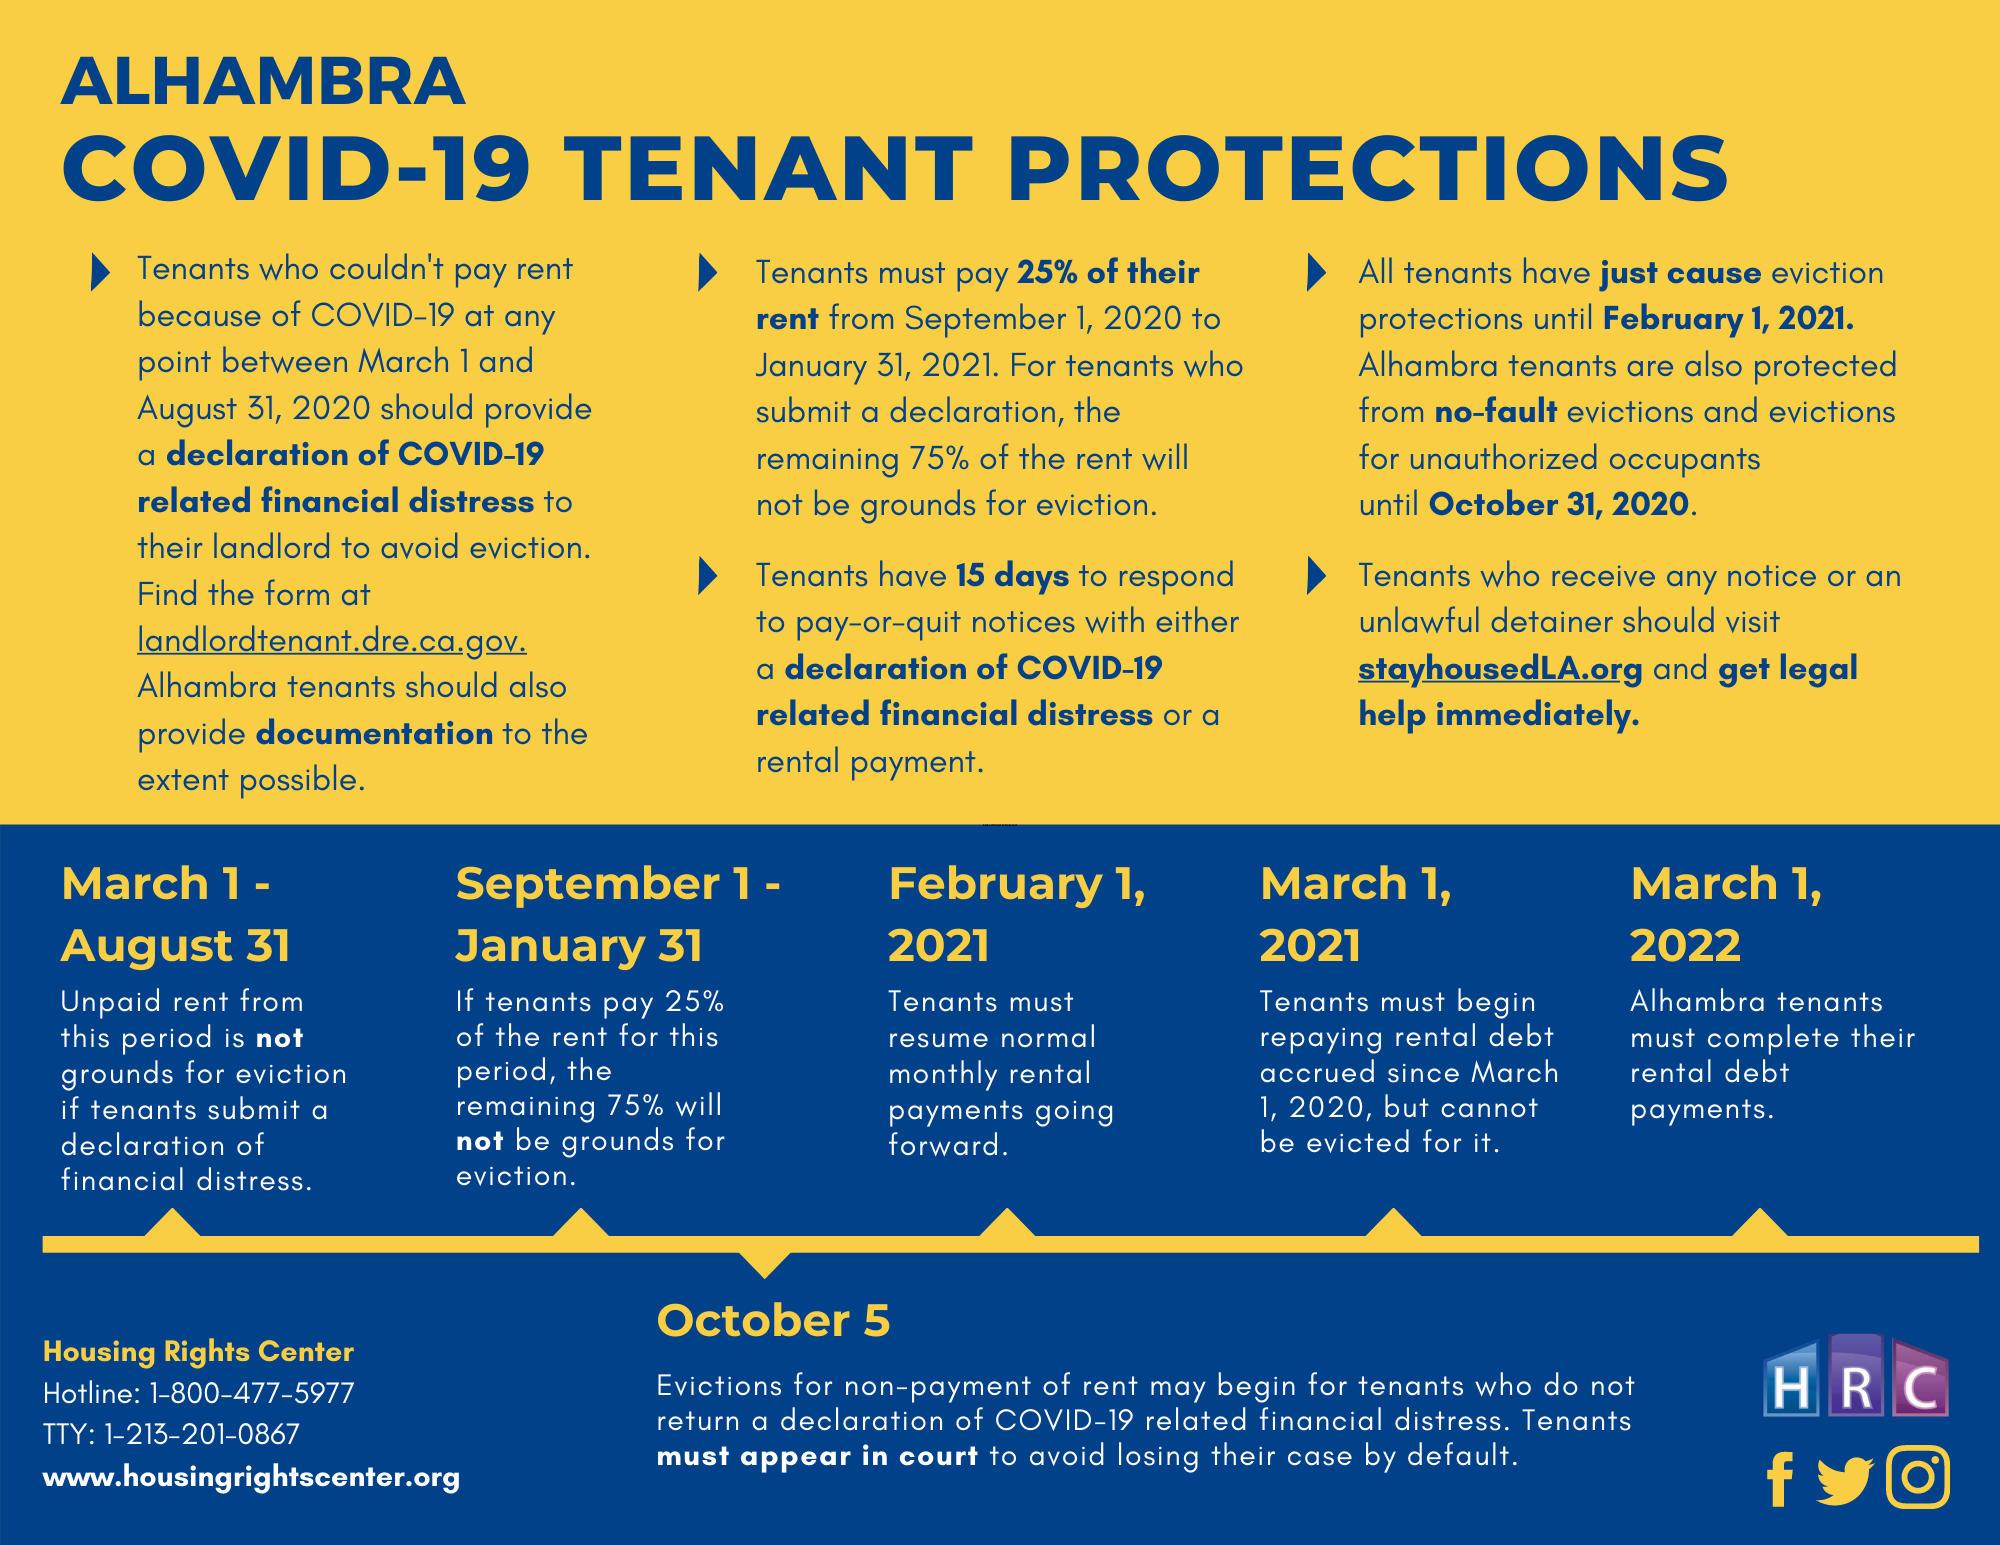 graphic covid-19 tenant protections